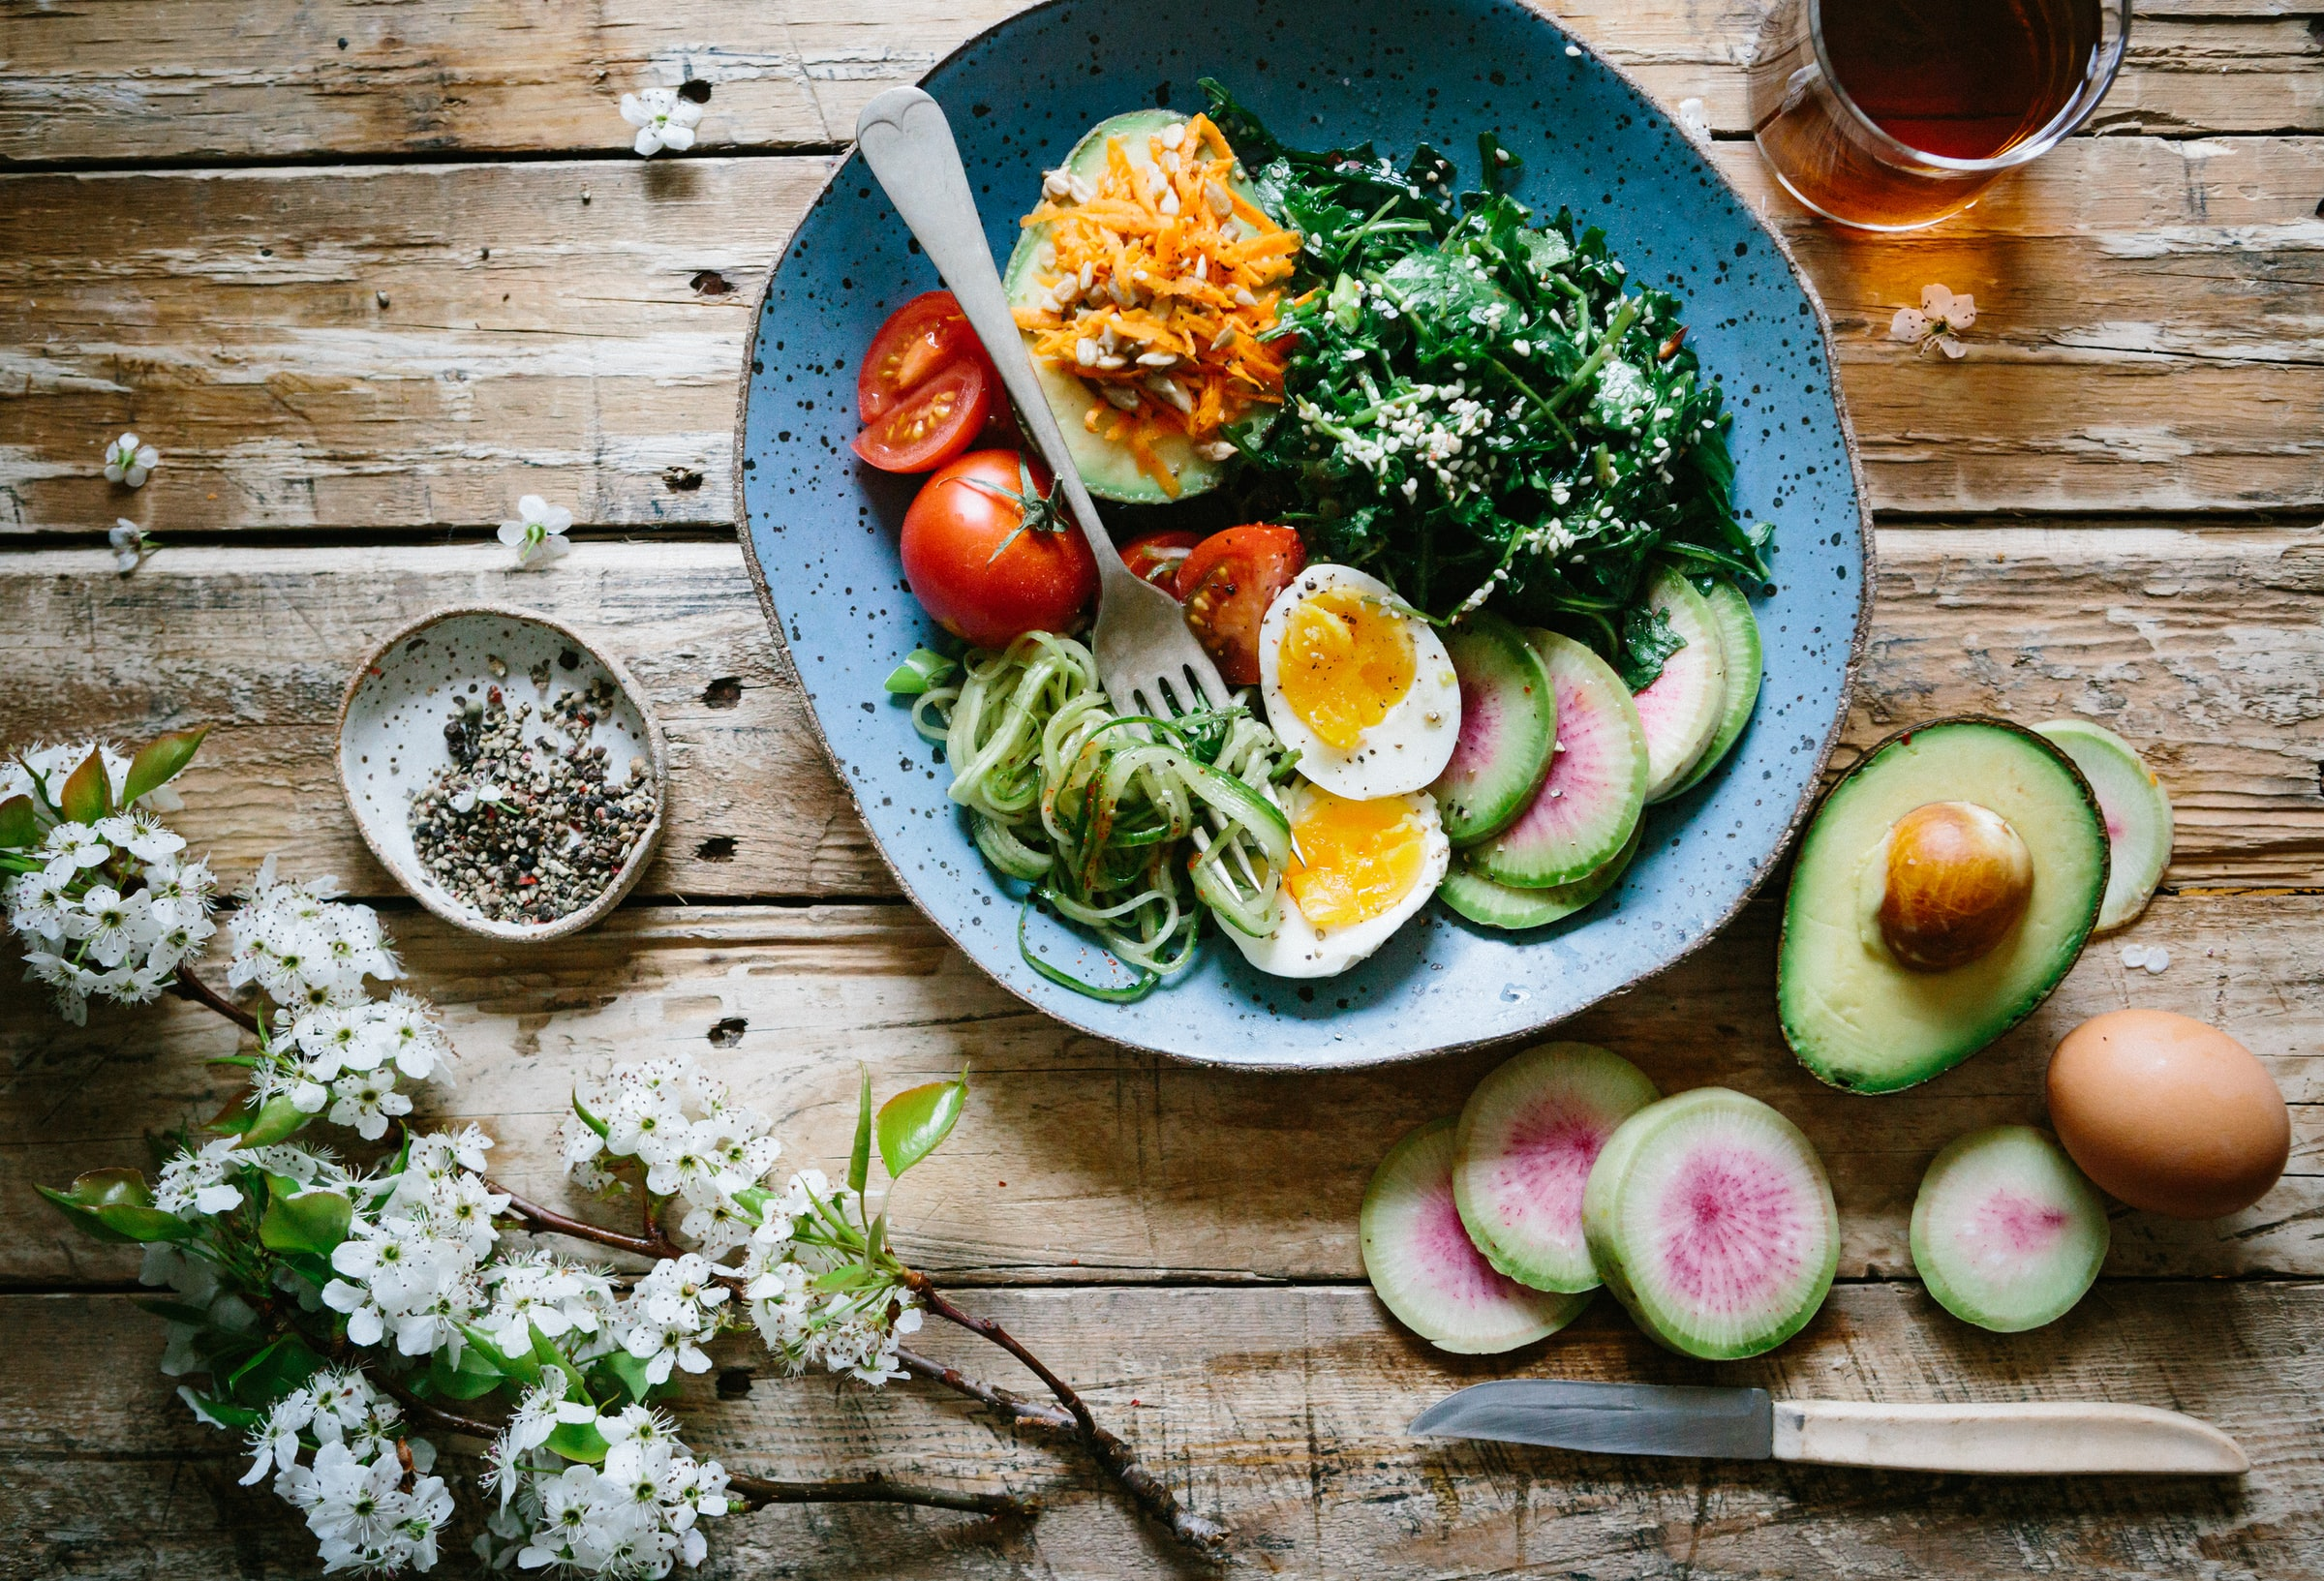 Dietary Guidelines Advisory Committee Report – 2020